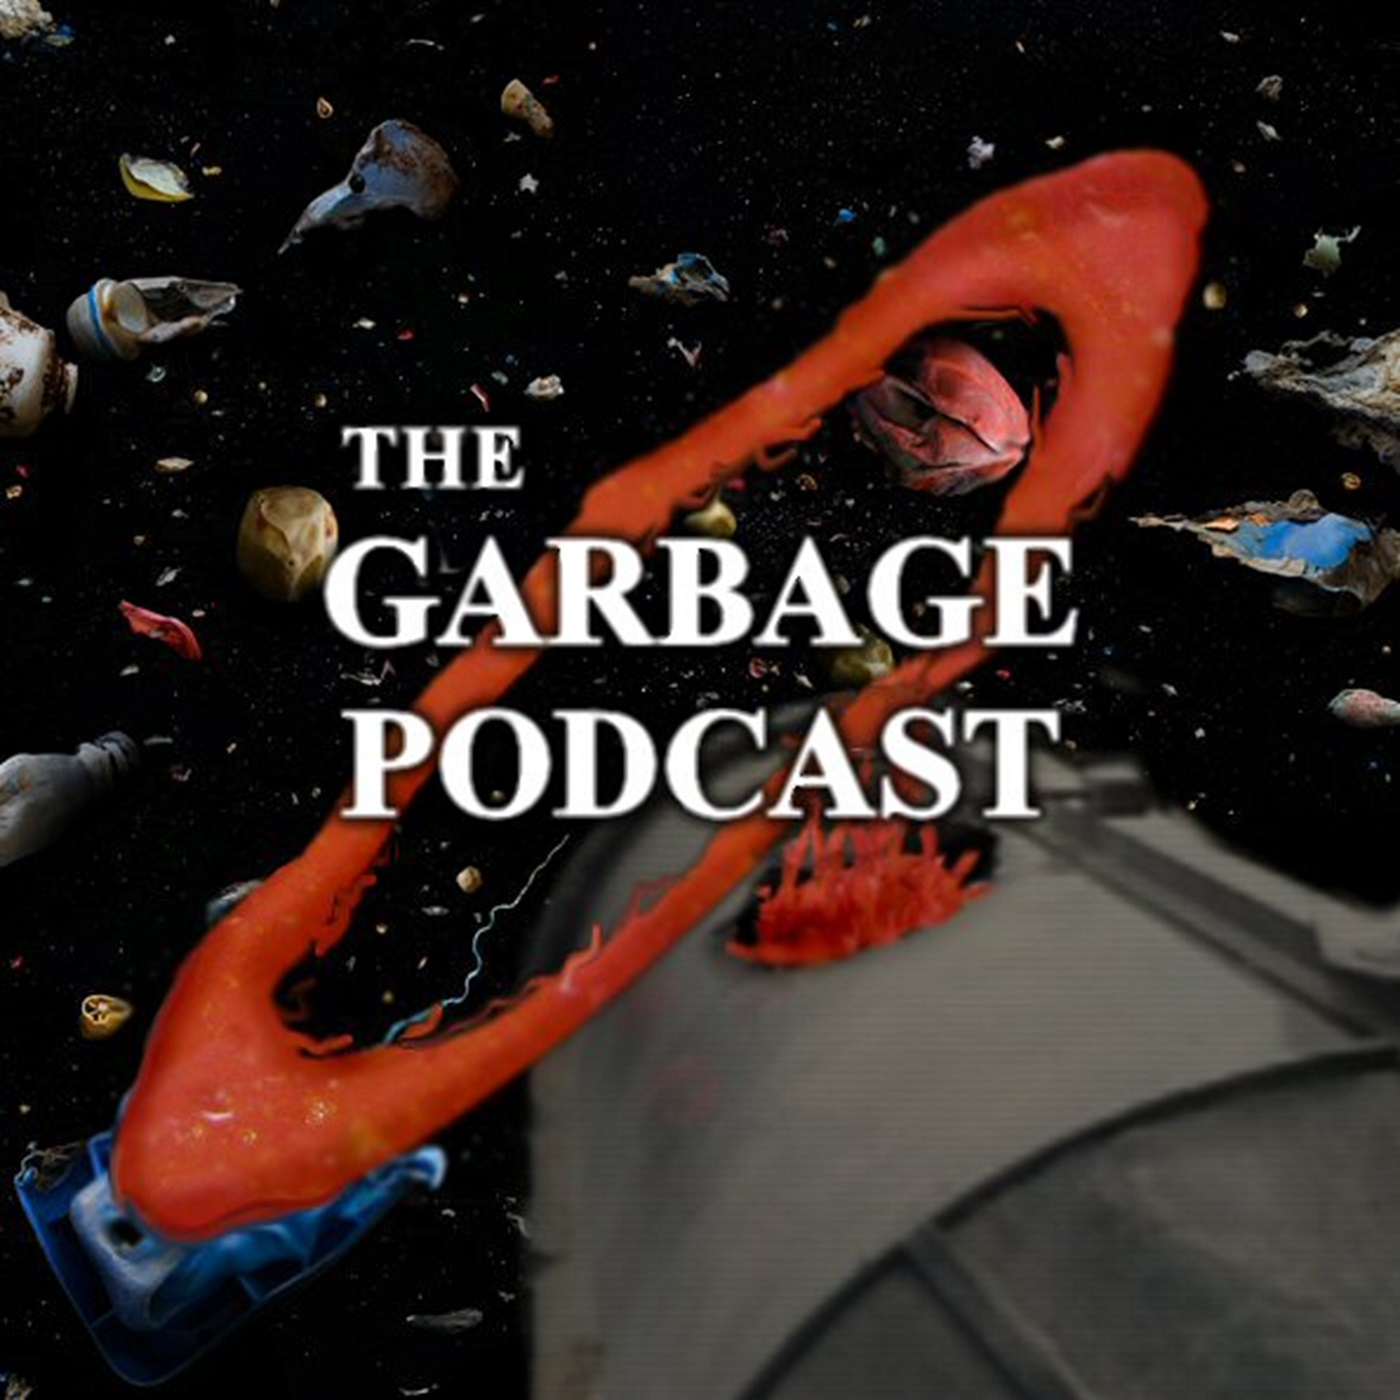 The Garbage Podcast